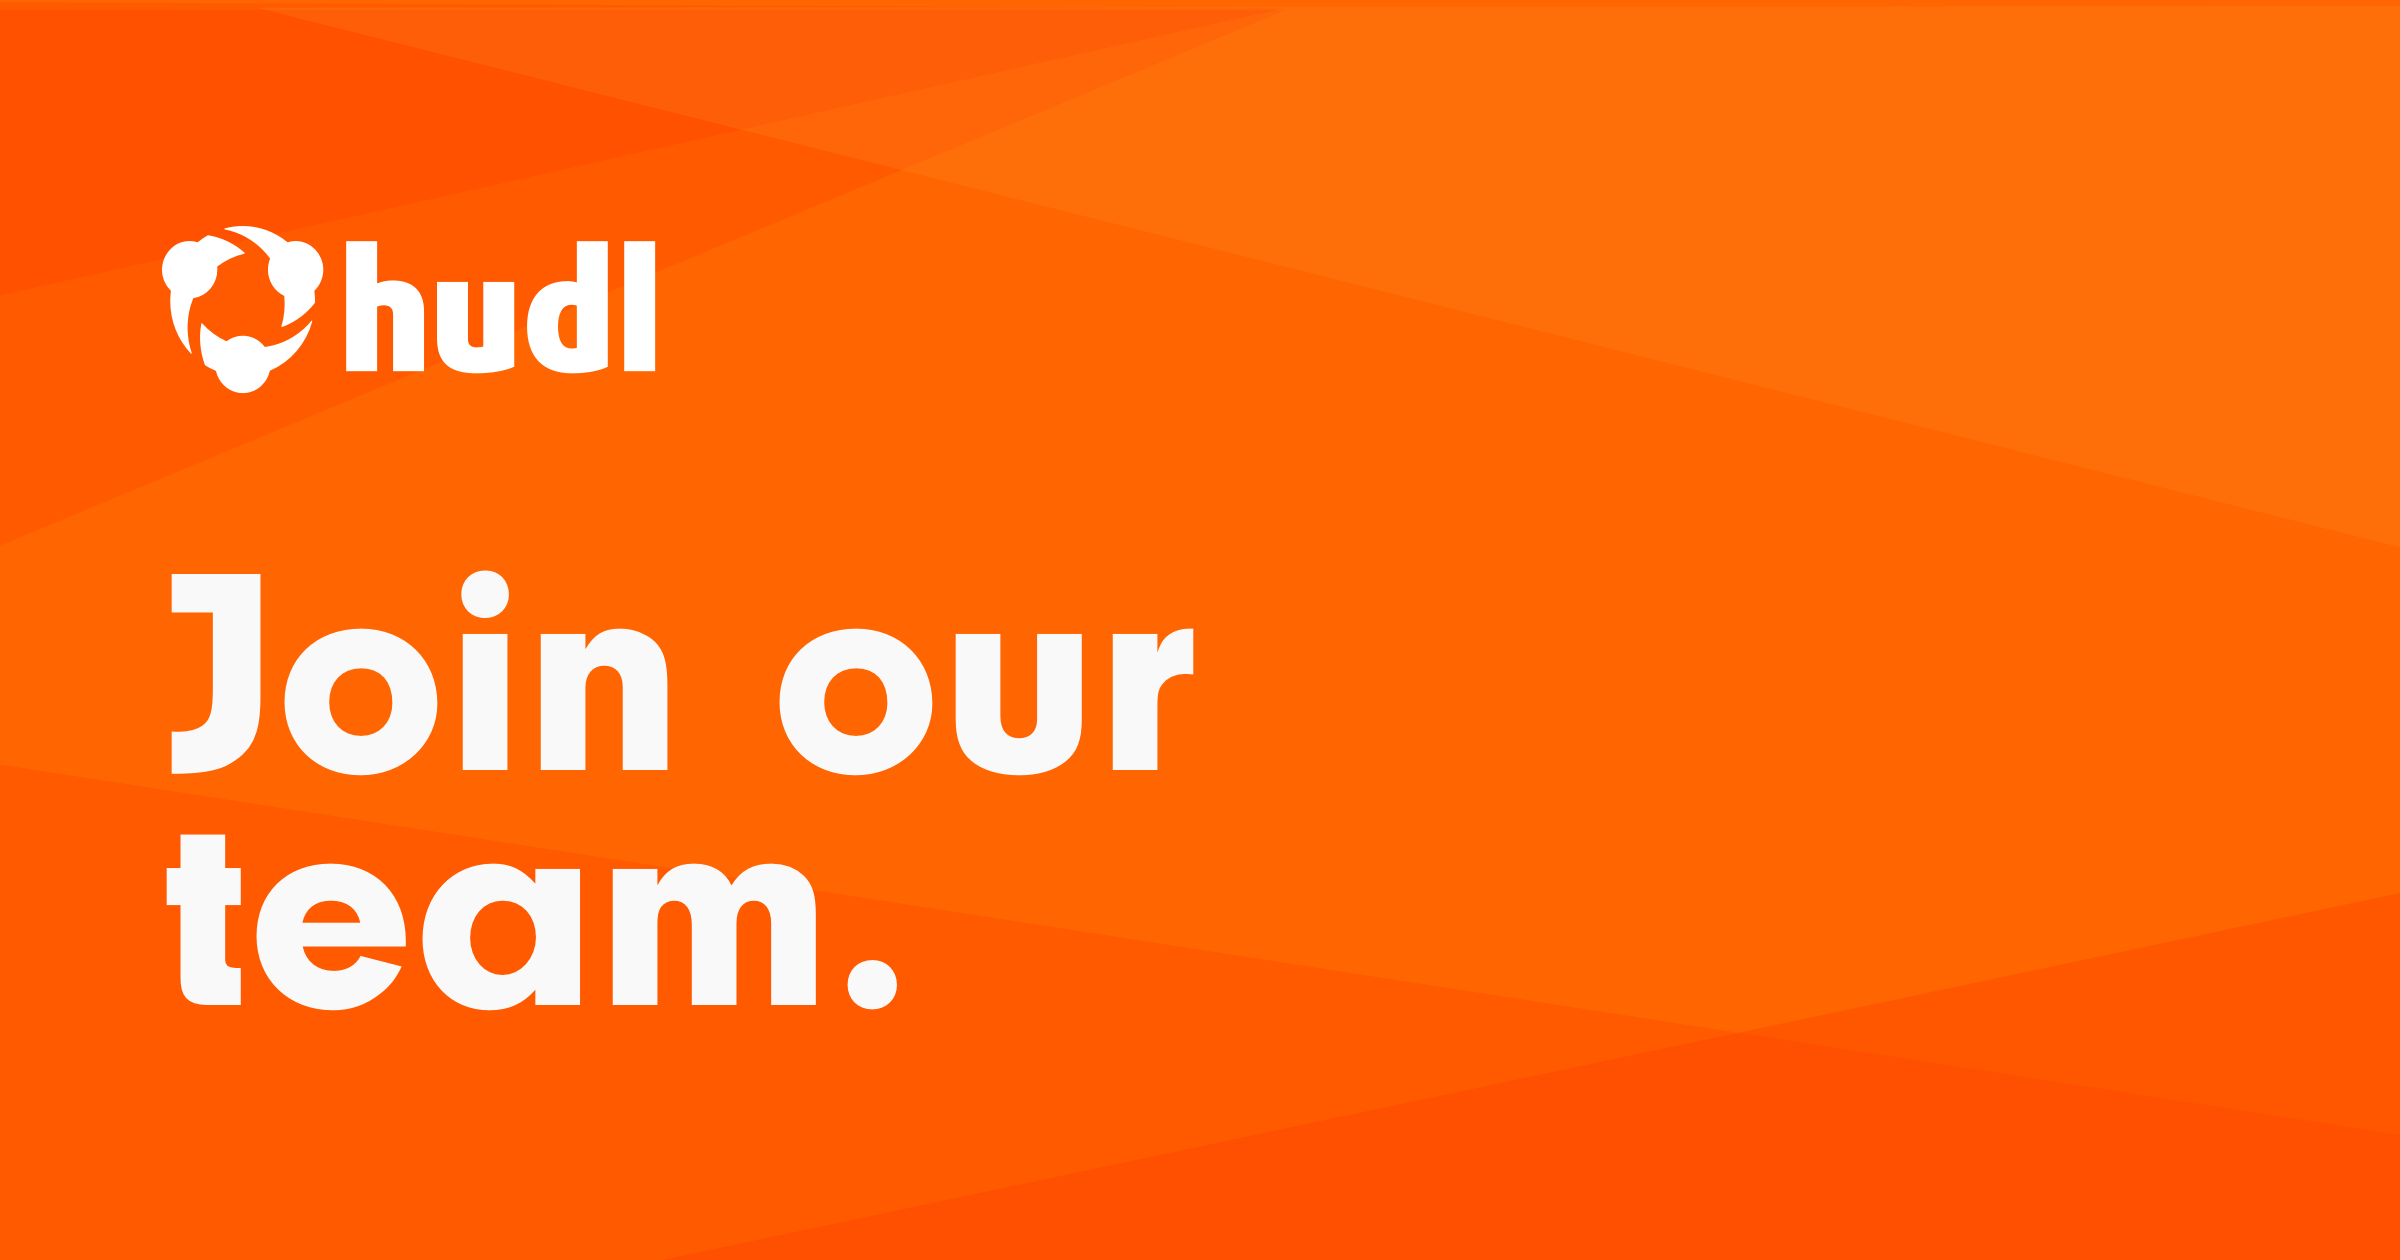 Hudl Join Our Team